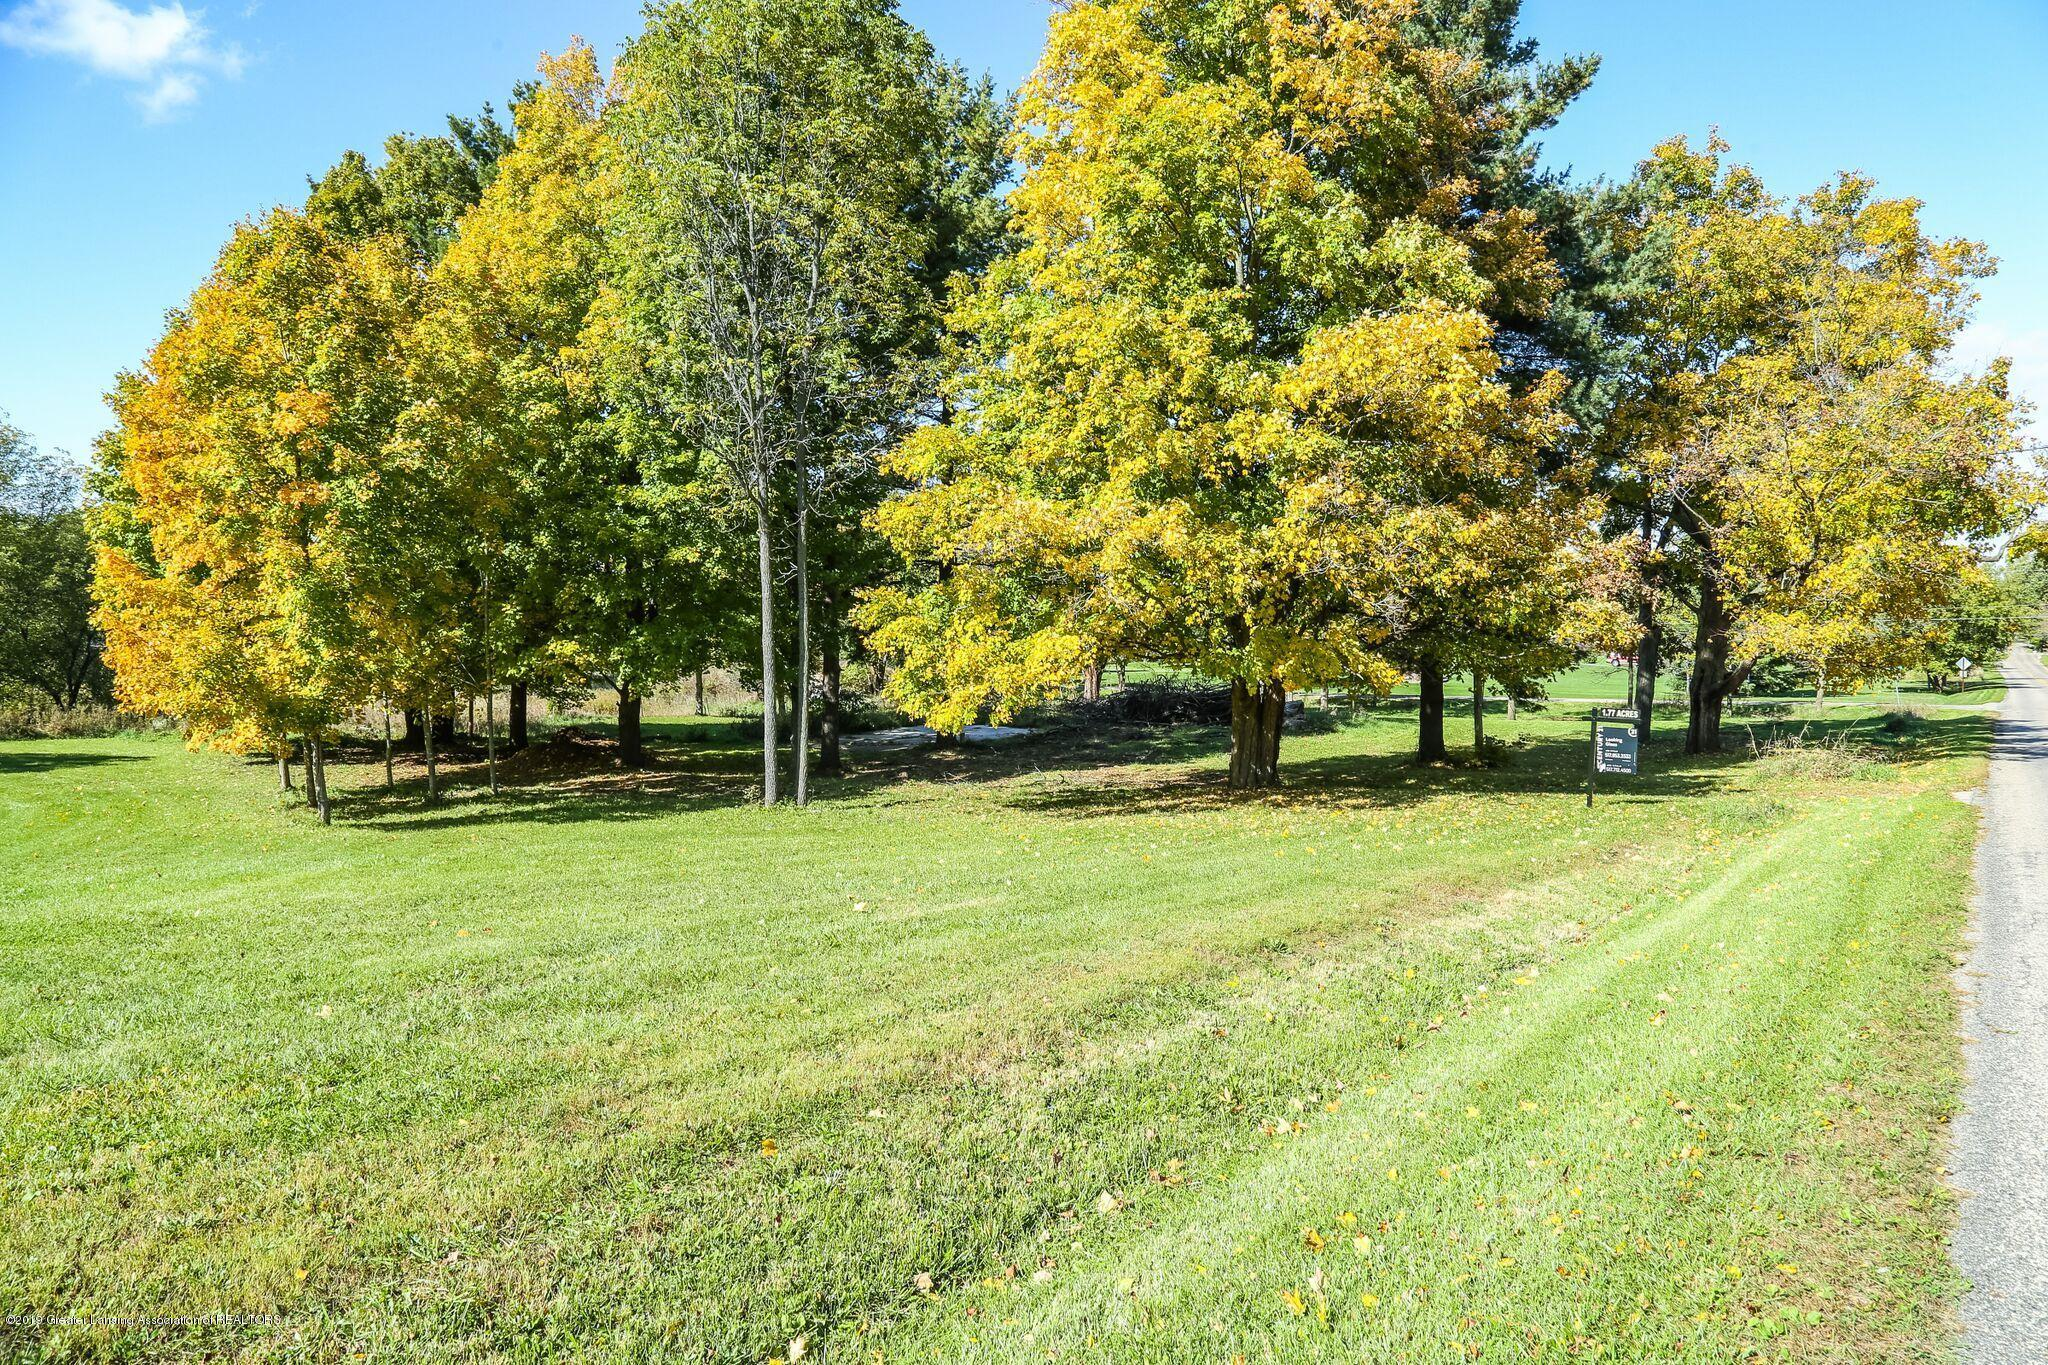 802 S Waverly Rd - Vacant Land - 6